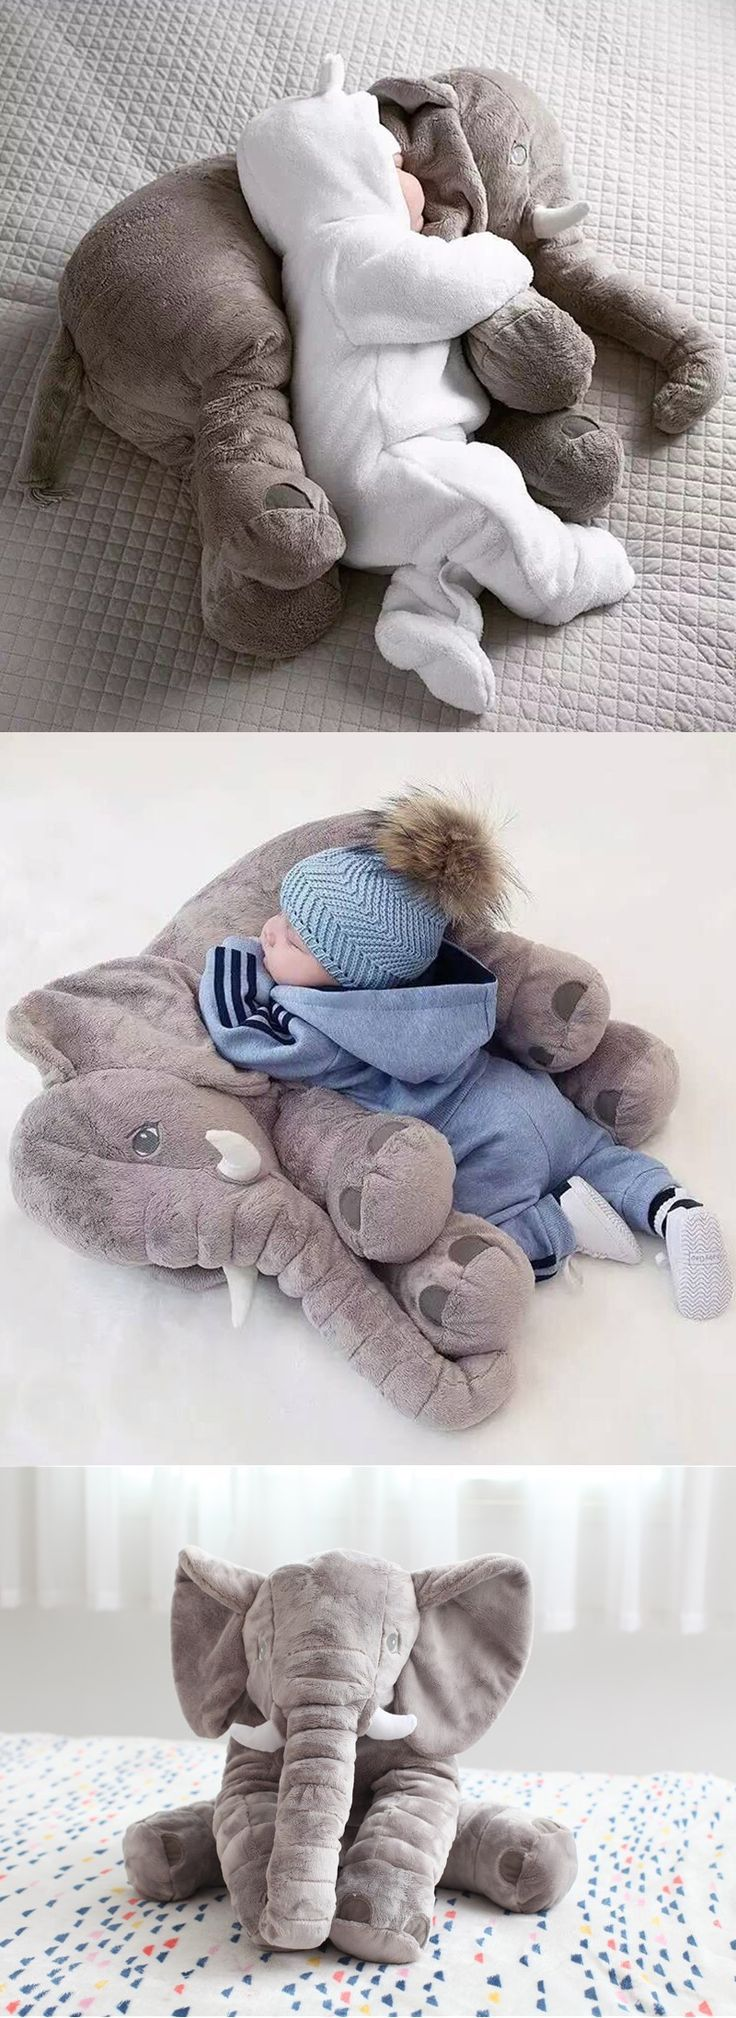 Baby Elephant Pillow images